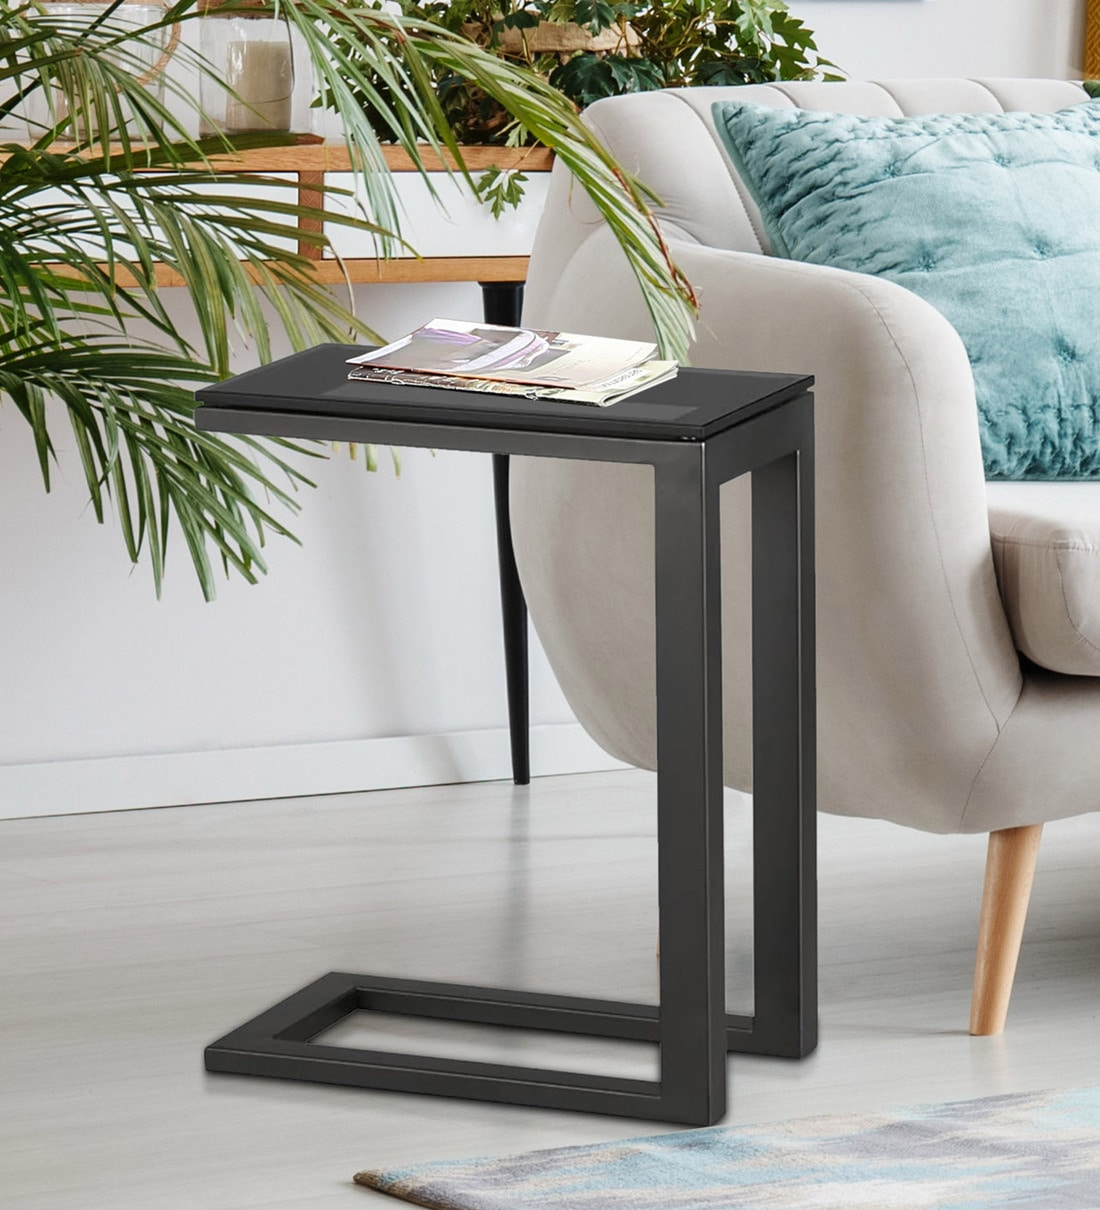 Buy C Shape Side Table With Black Glass Top By Asian Arts Online Contemporary End Tables Tables Furniture Pepperfry Product